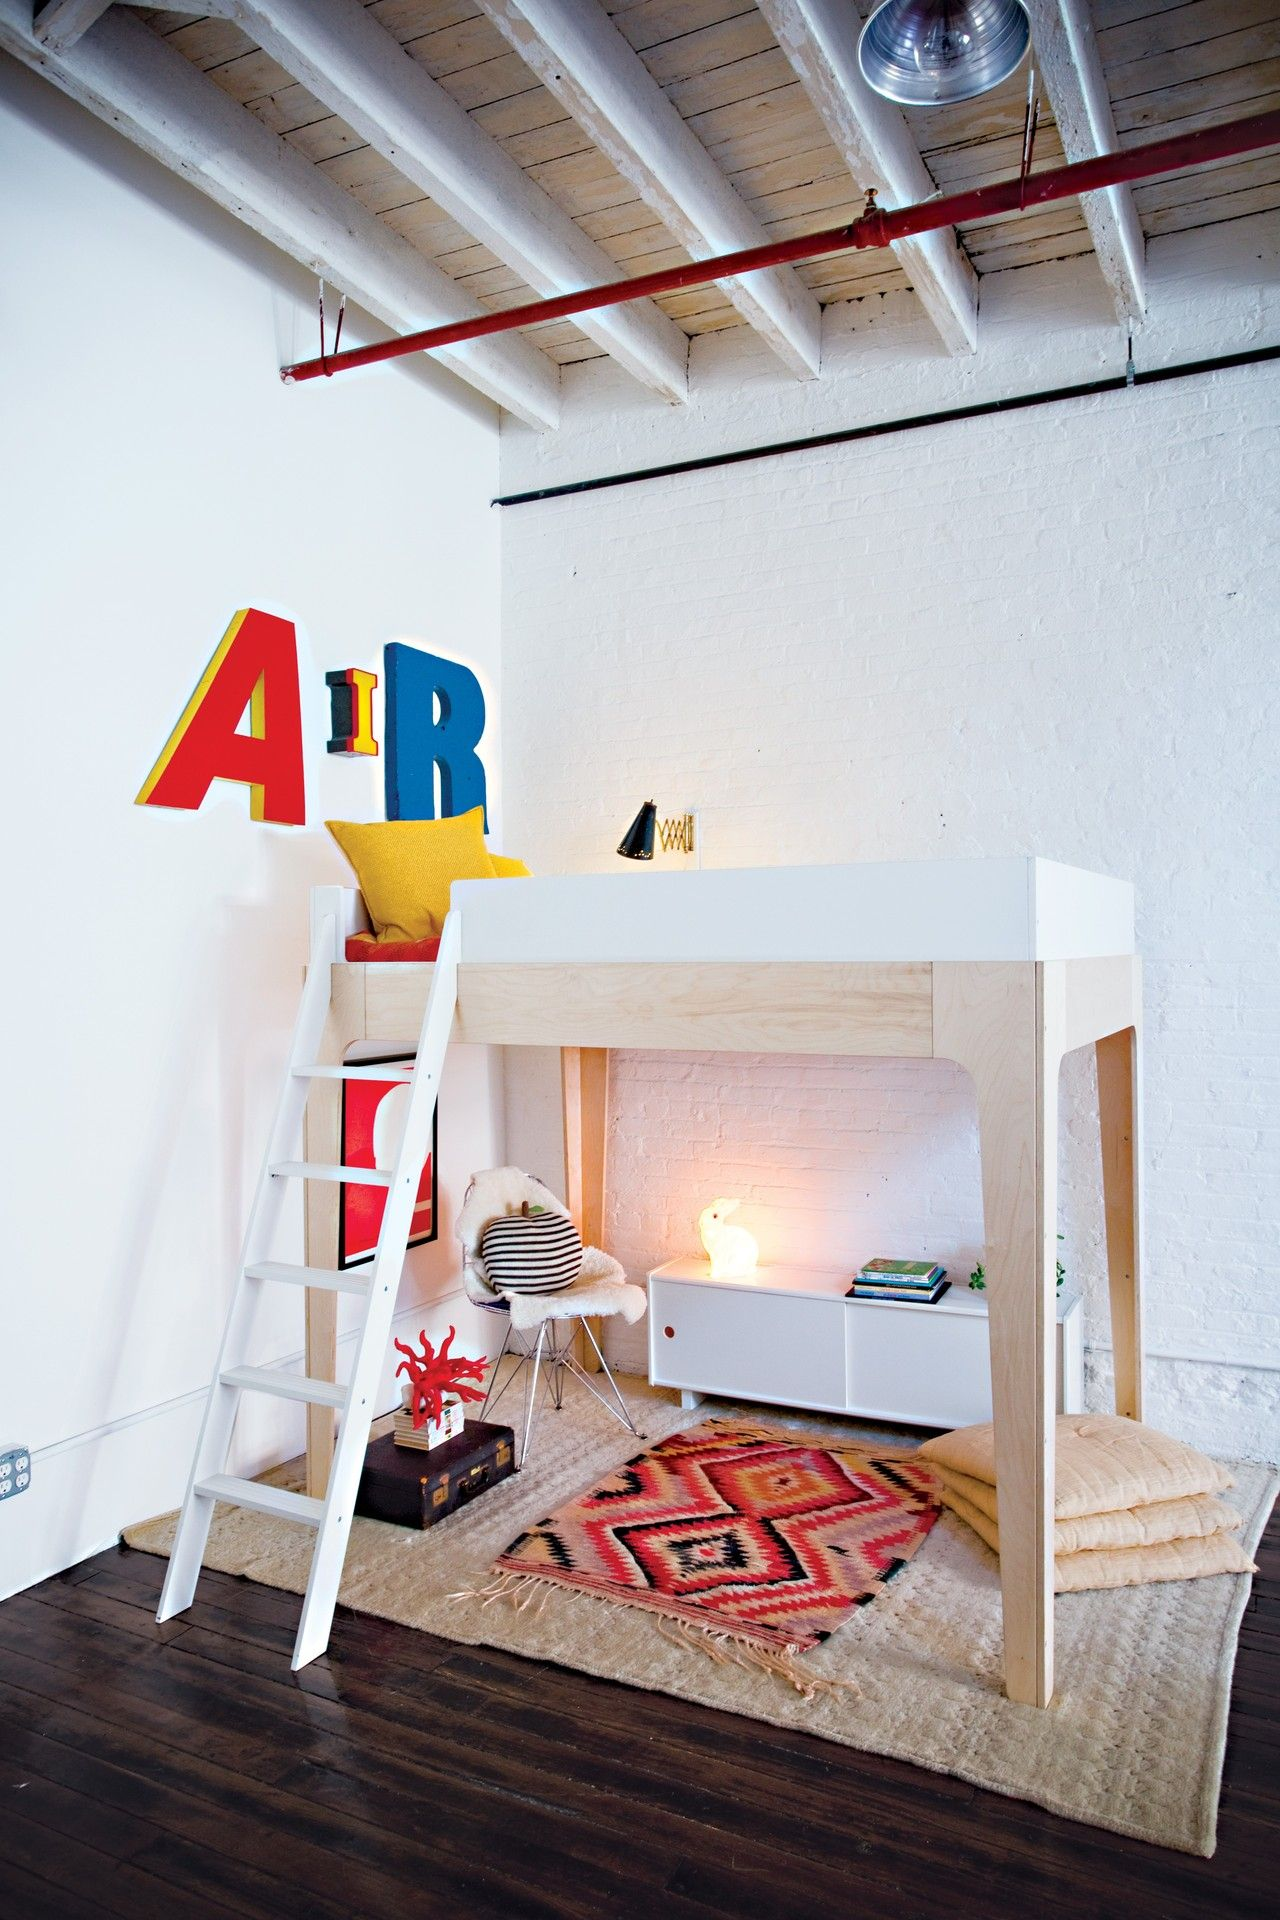 Loft bedroom ideas for boys  Kidus Room Ideas Decorating with Pops of Red  Pinterest  Red kids